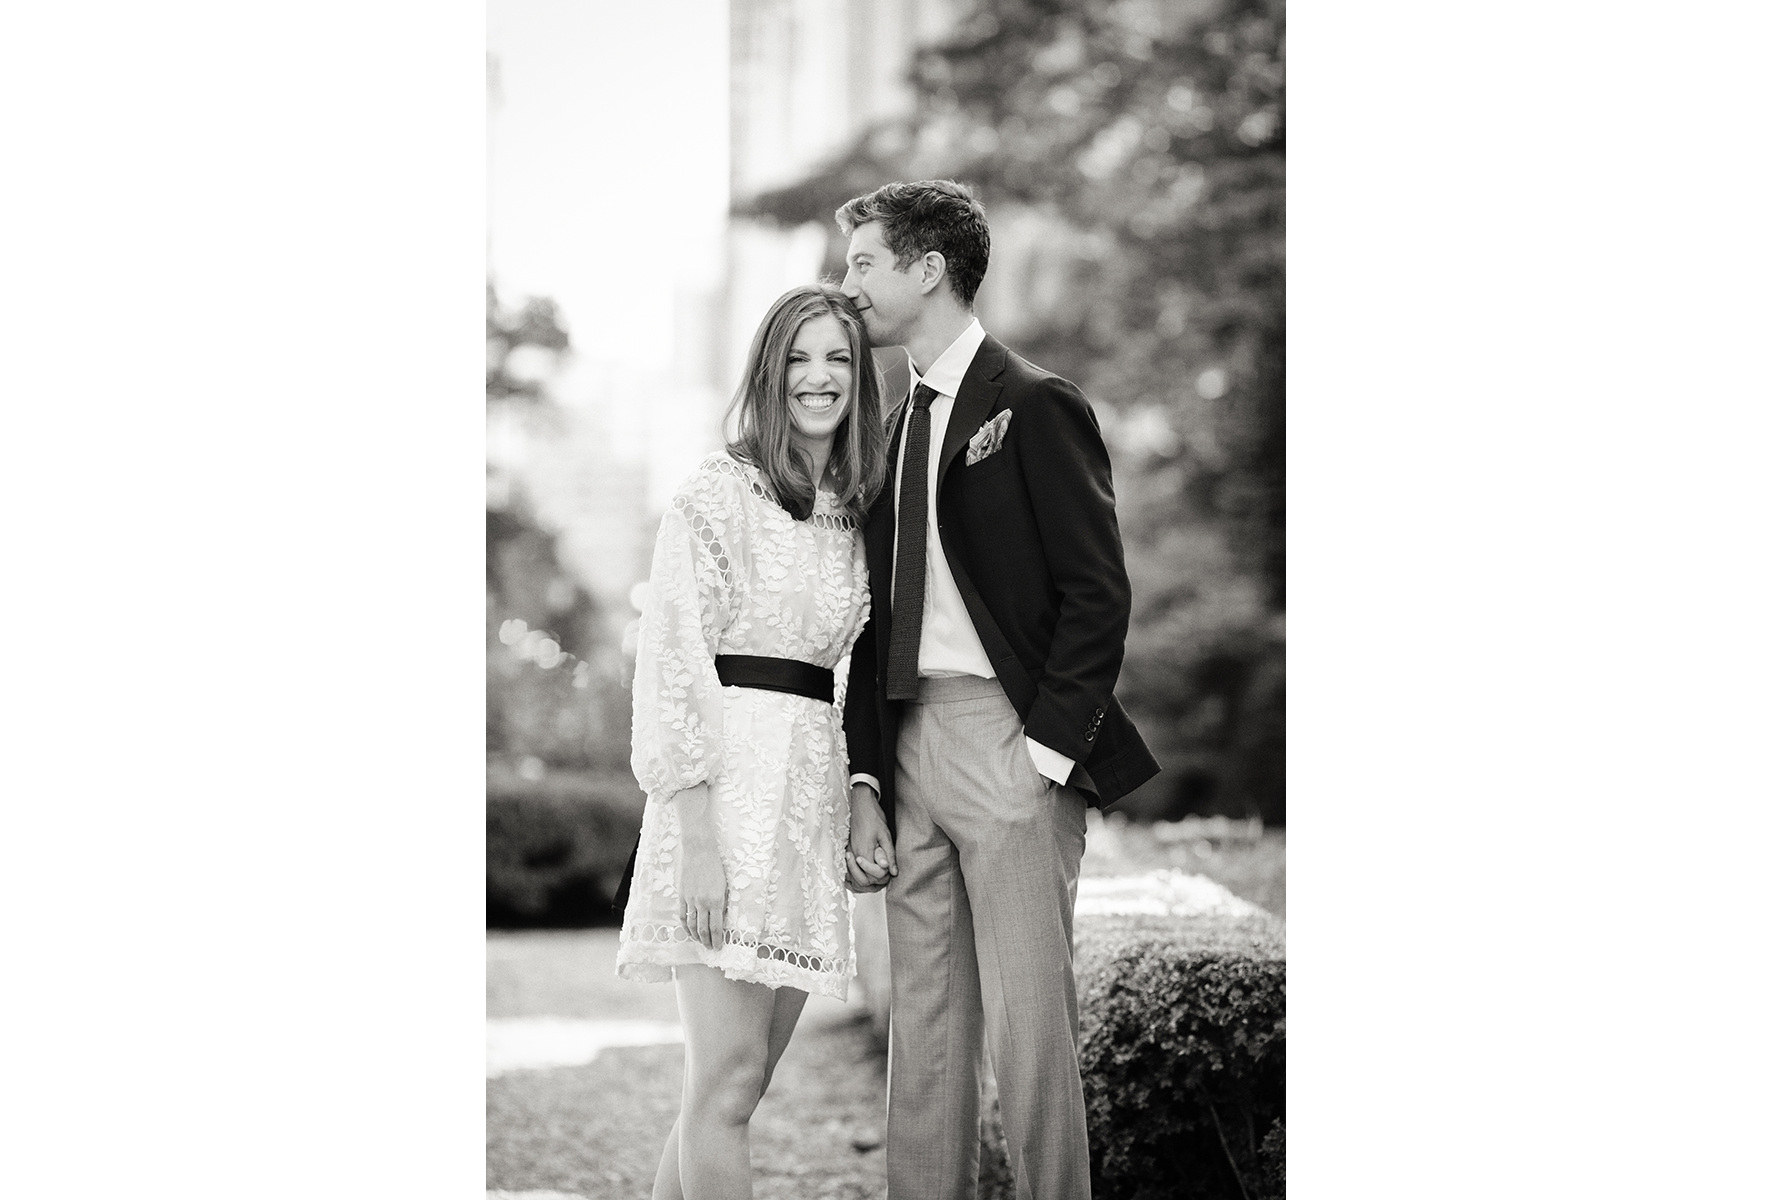 raquelreis_wedding_photography_engagements_025.png